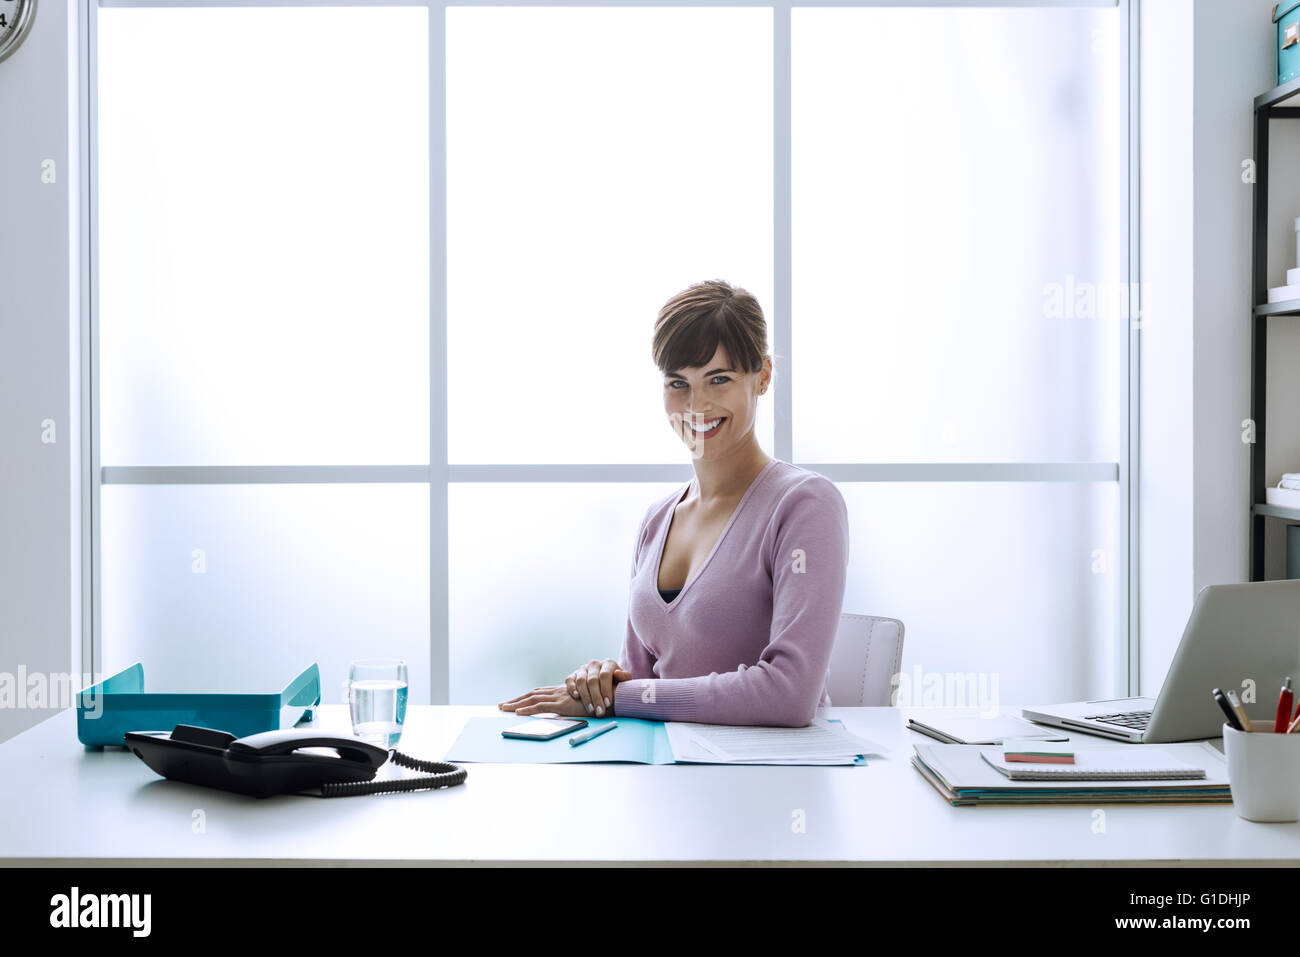 Confident smiling young businesswoman in her office, she is looking at camera and sitting at desk - Stock Image